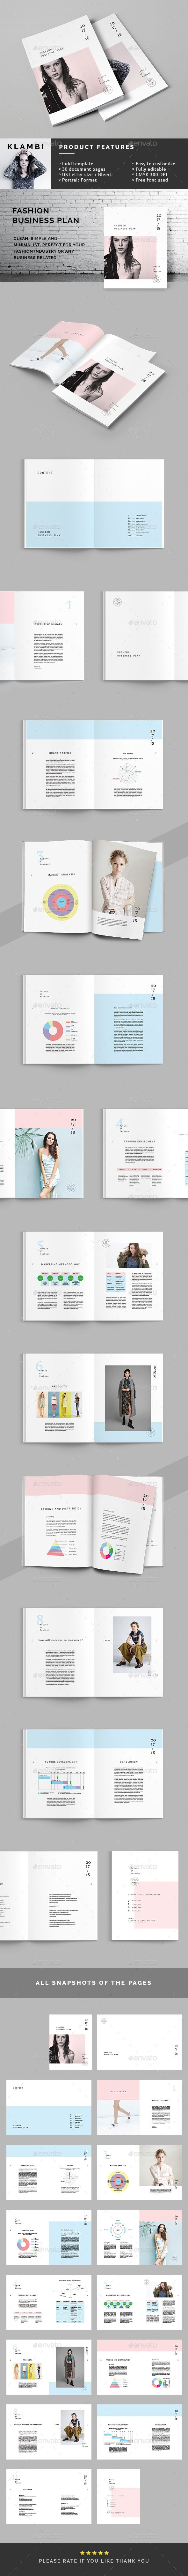 Fashion Business Plan by BOXKAYU The Business Plan is a simple Indesign brochure template available in A4 and US letter sizes. Each page features unique layouts wi